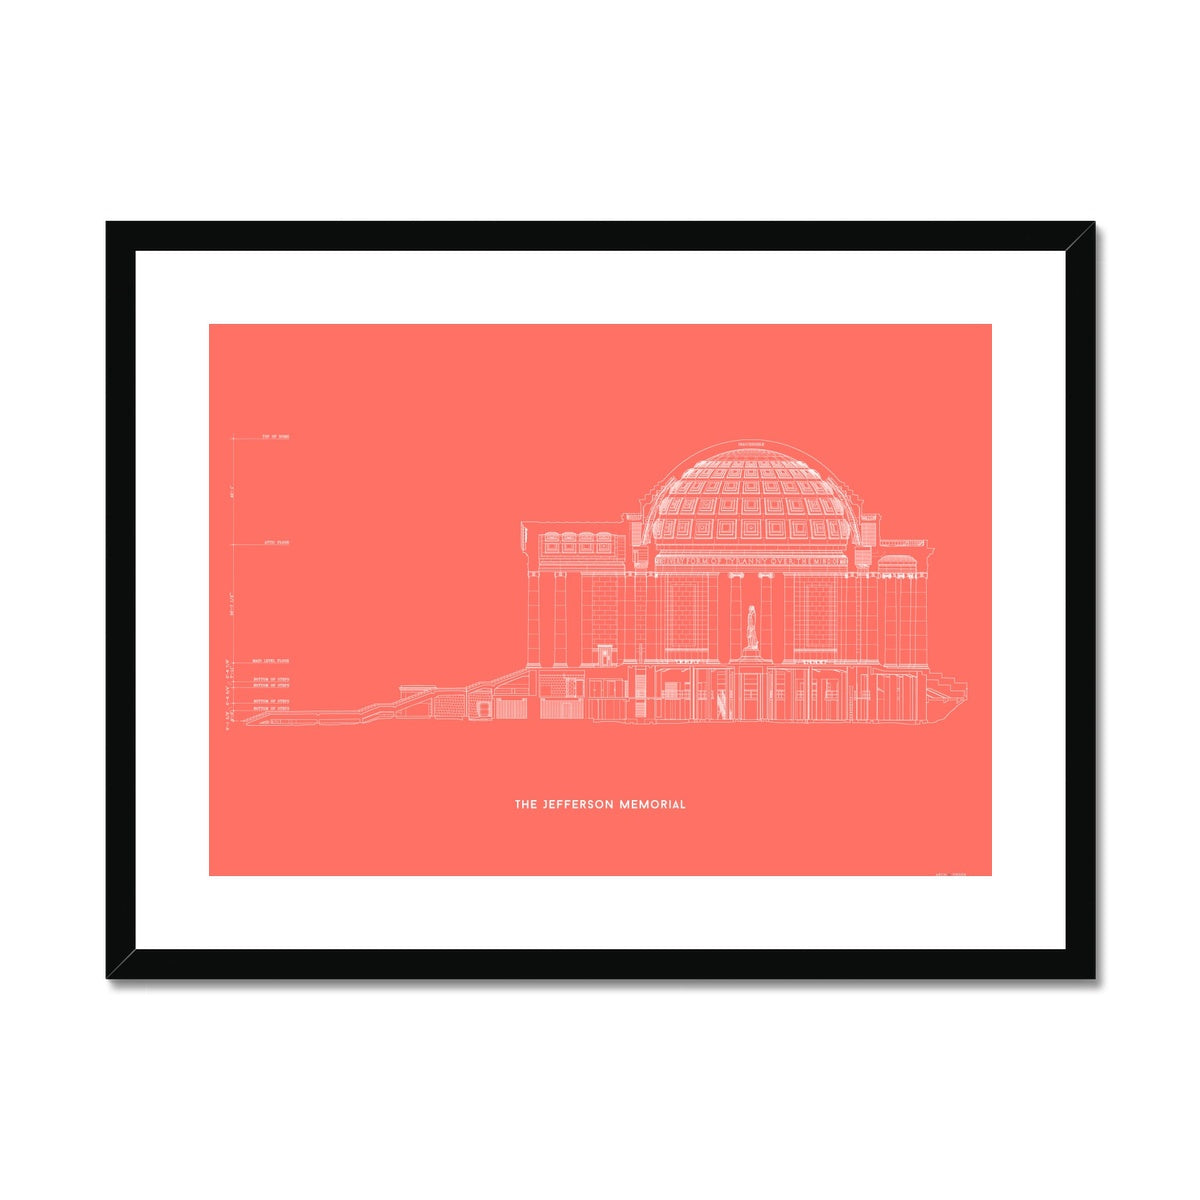 The Jefferson Memorial West Elevation Cross Section - Red -  Framed & Mounted Print